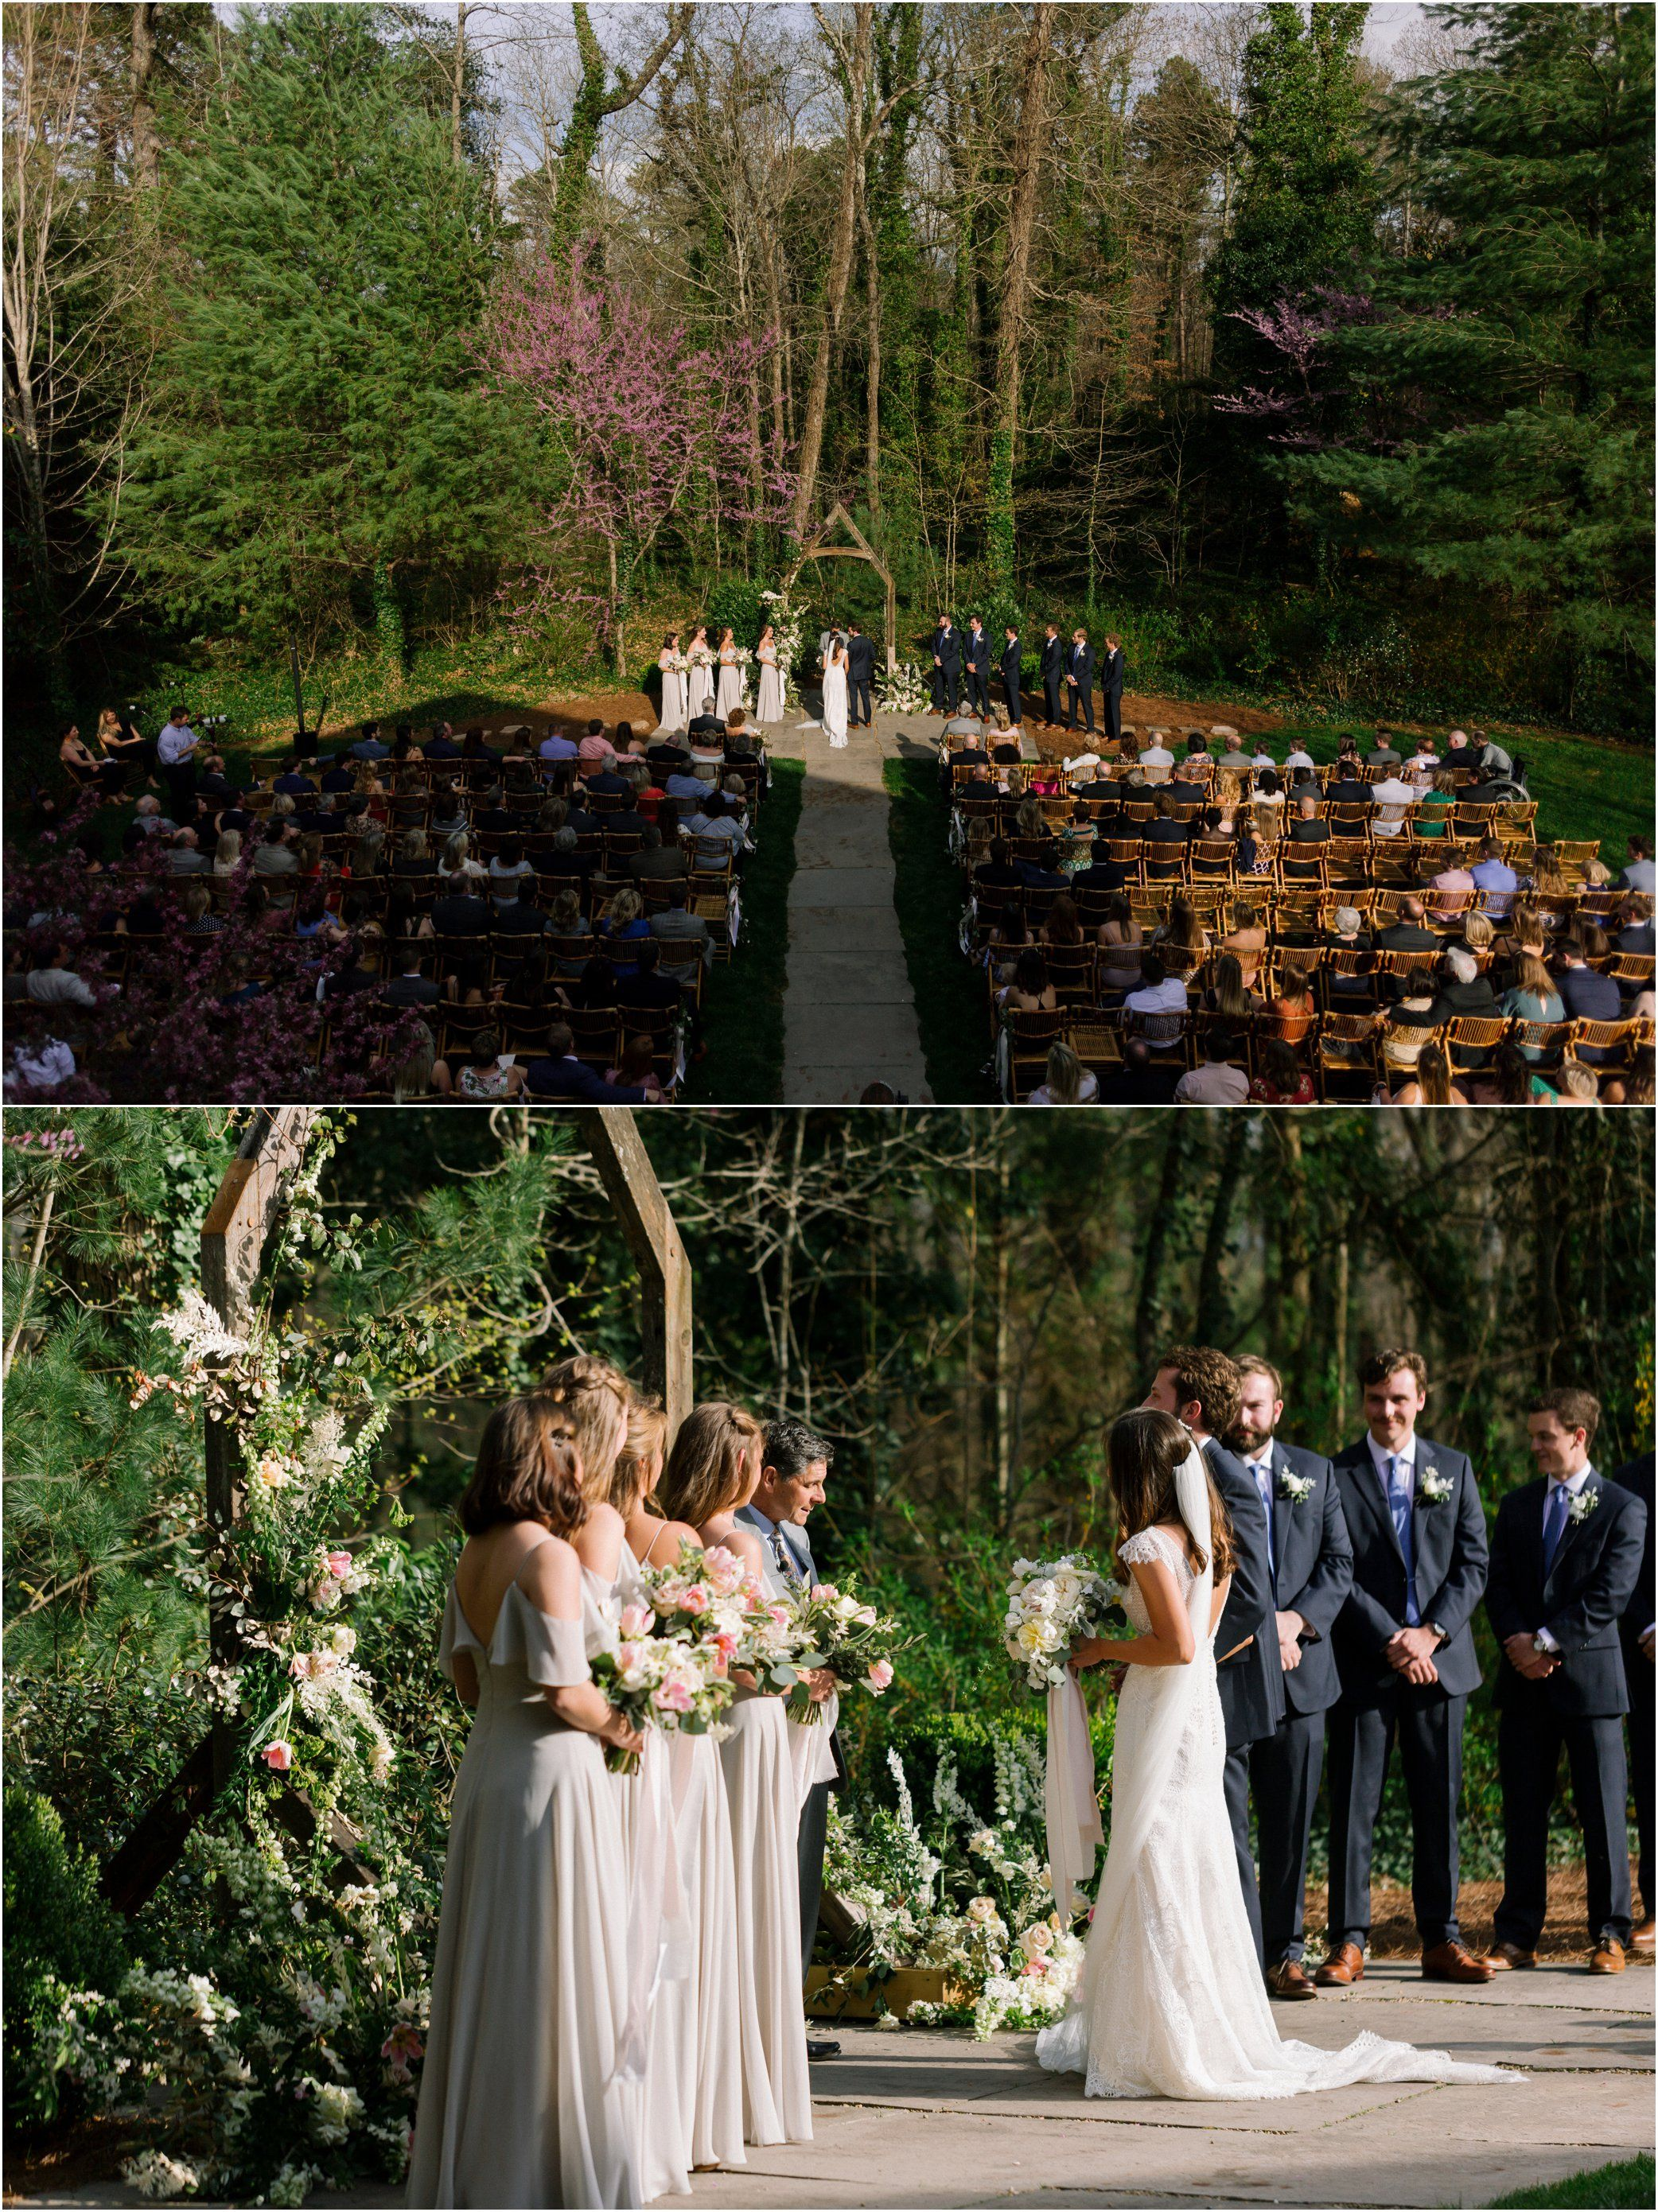 A Spring Forest Wedding At Rt Lodge In Maryville Tenn An Outdoor